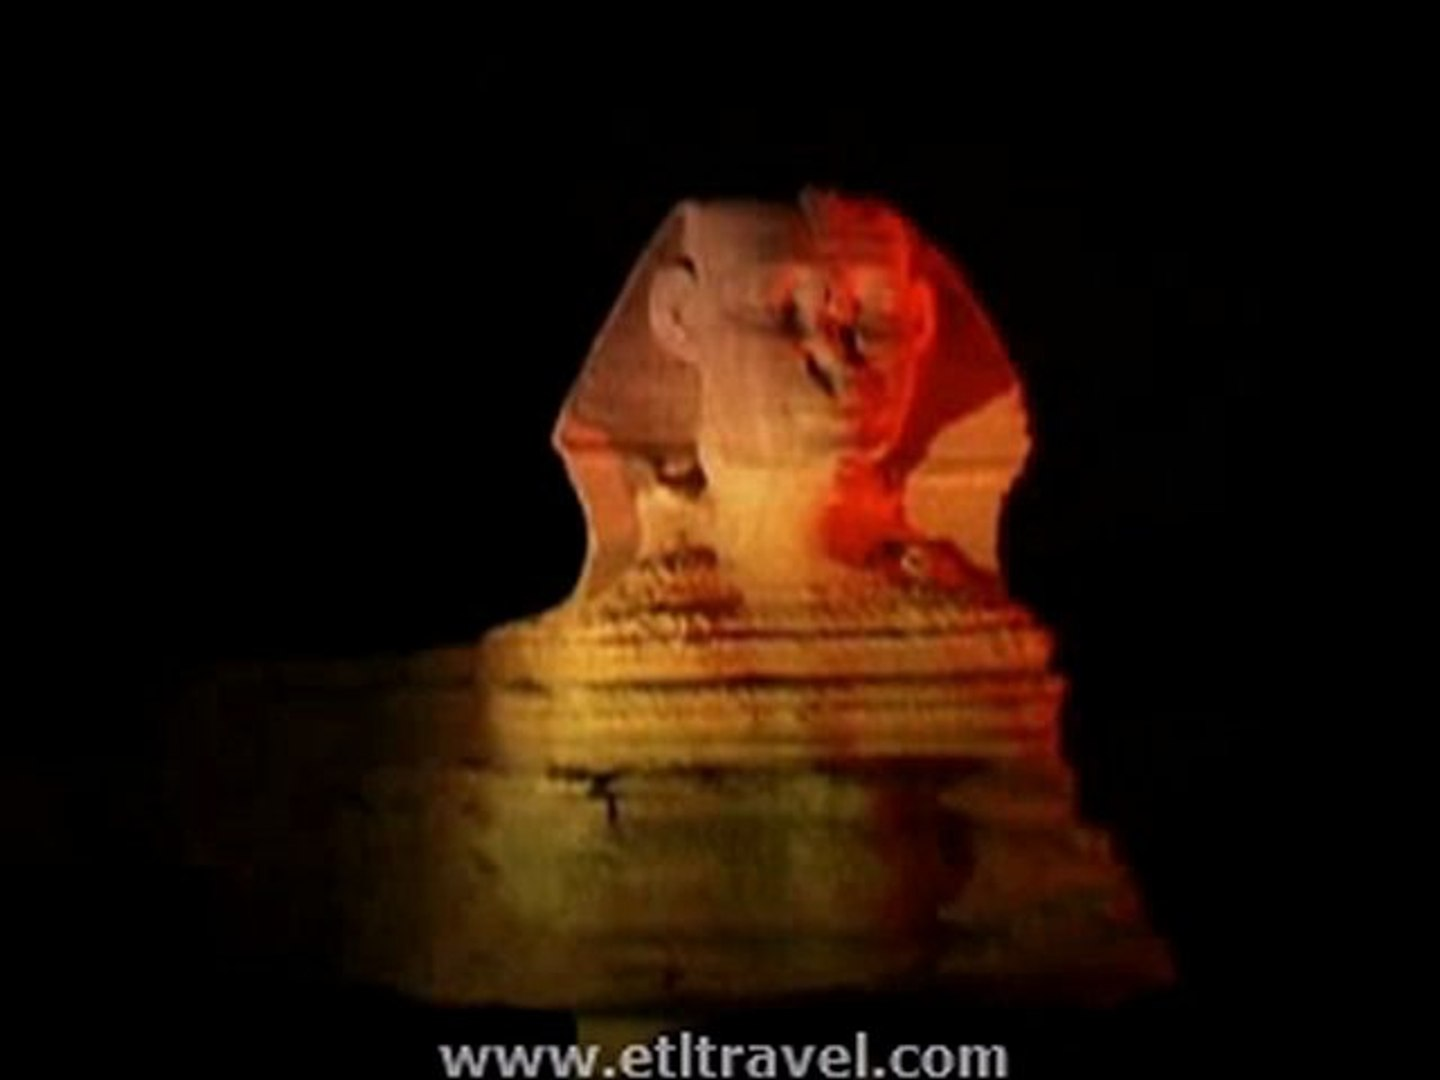 Sound and Light Show at Sphinx Plateau by www.etltravel.com